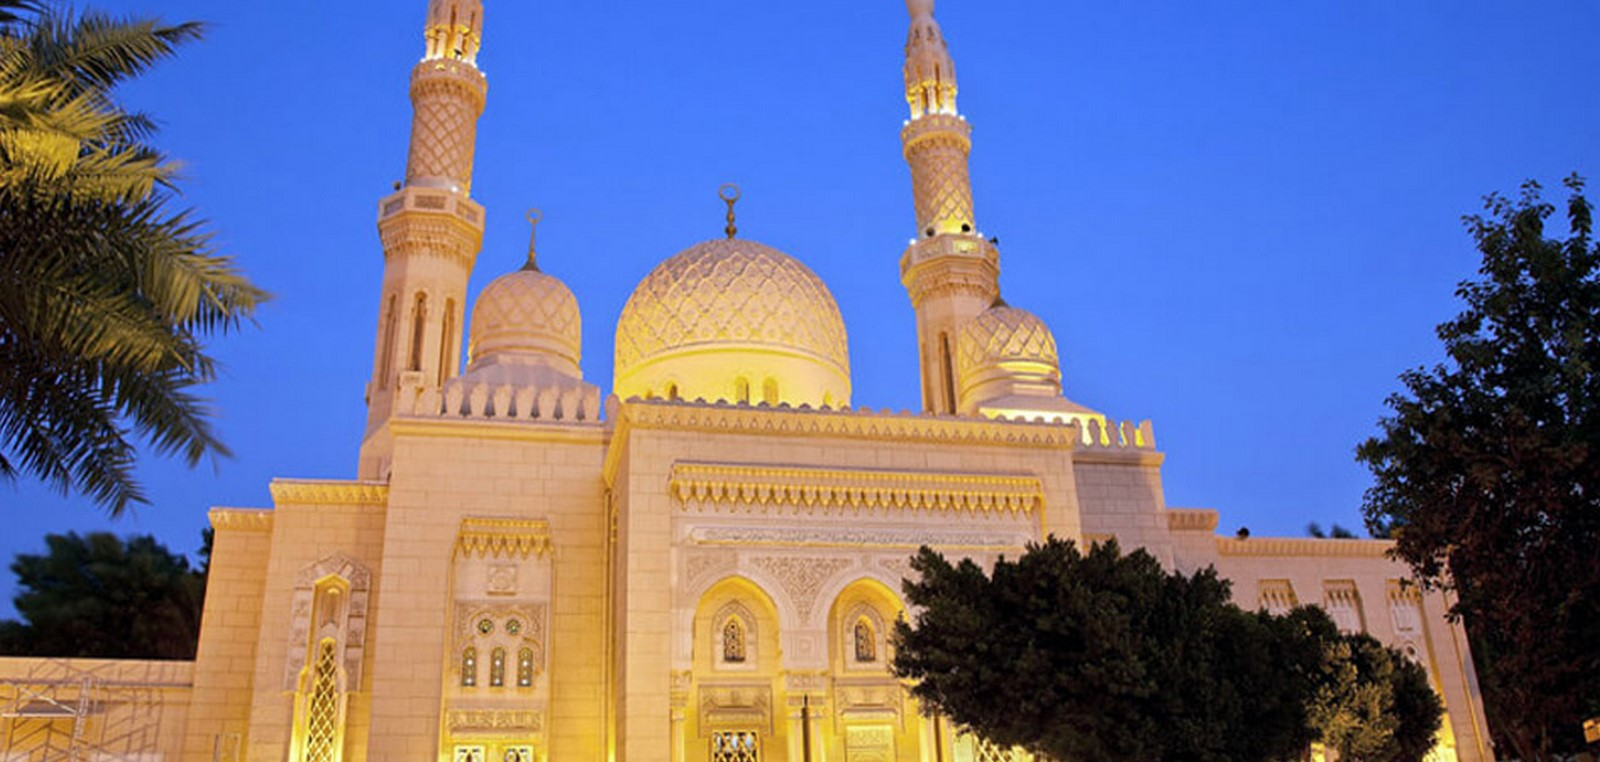 10 Structures that represent the Historical architecture of UAE - Sheet5